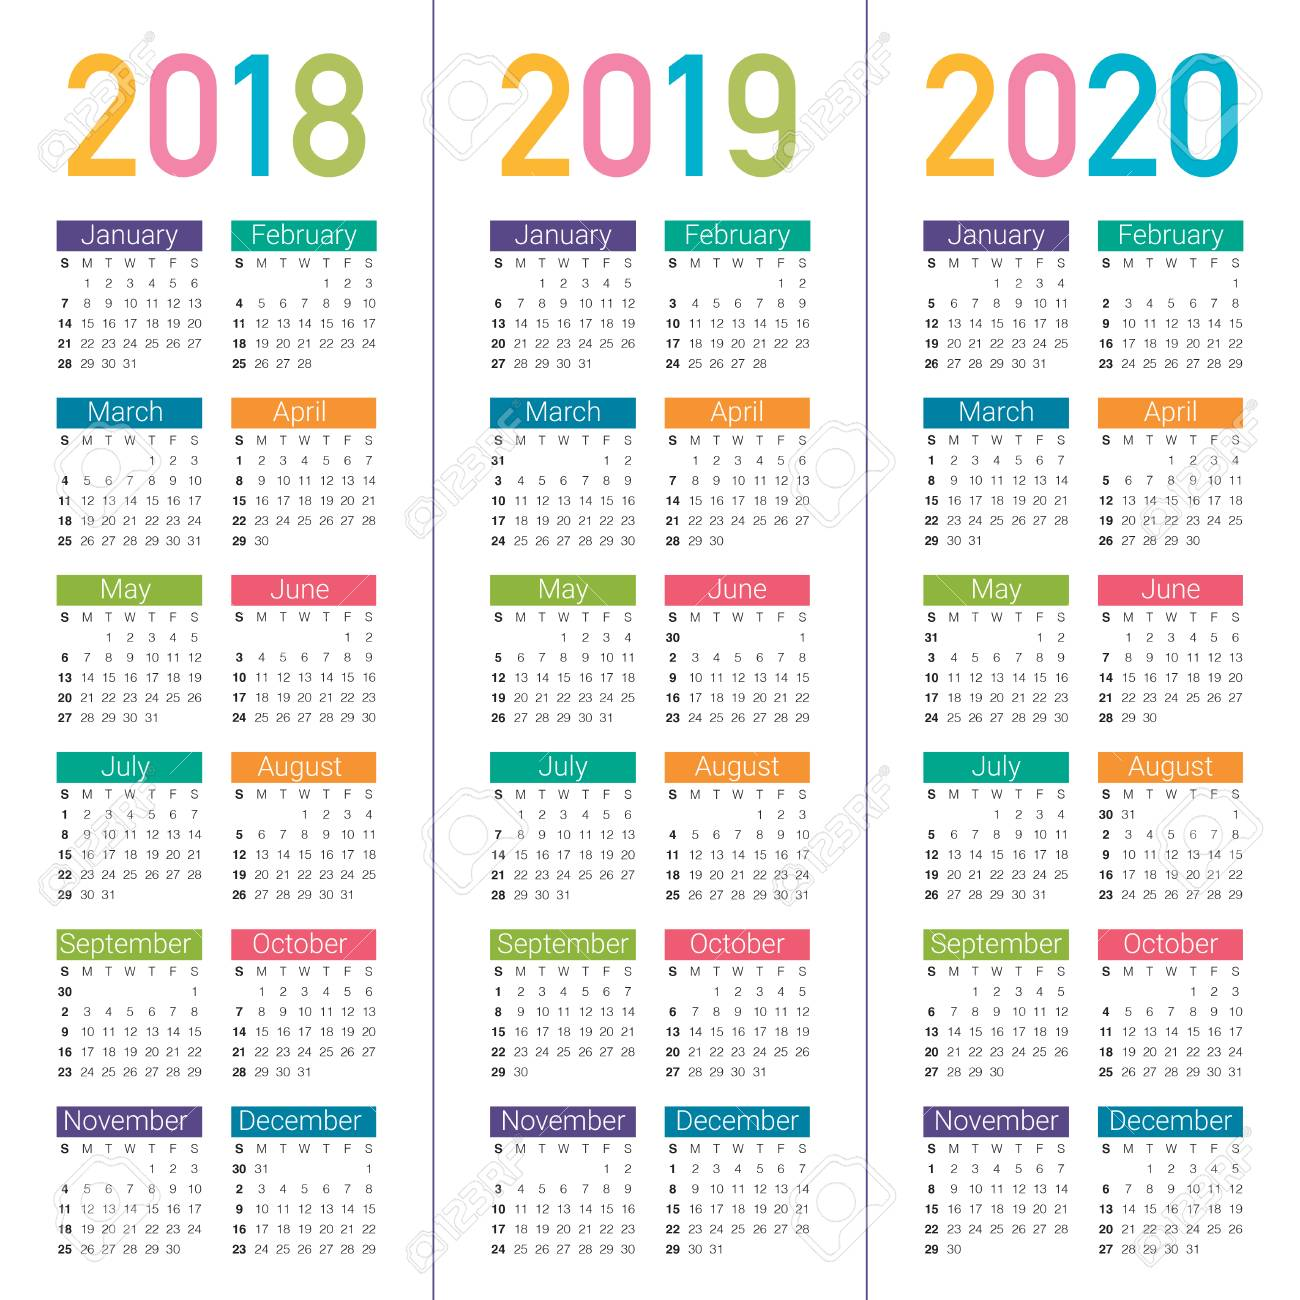 Calendrier Pro A 2020 2019.Year 2018 2019 2020 Calendar Vector Design Template Simple And